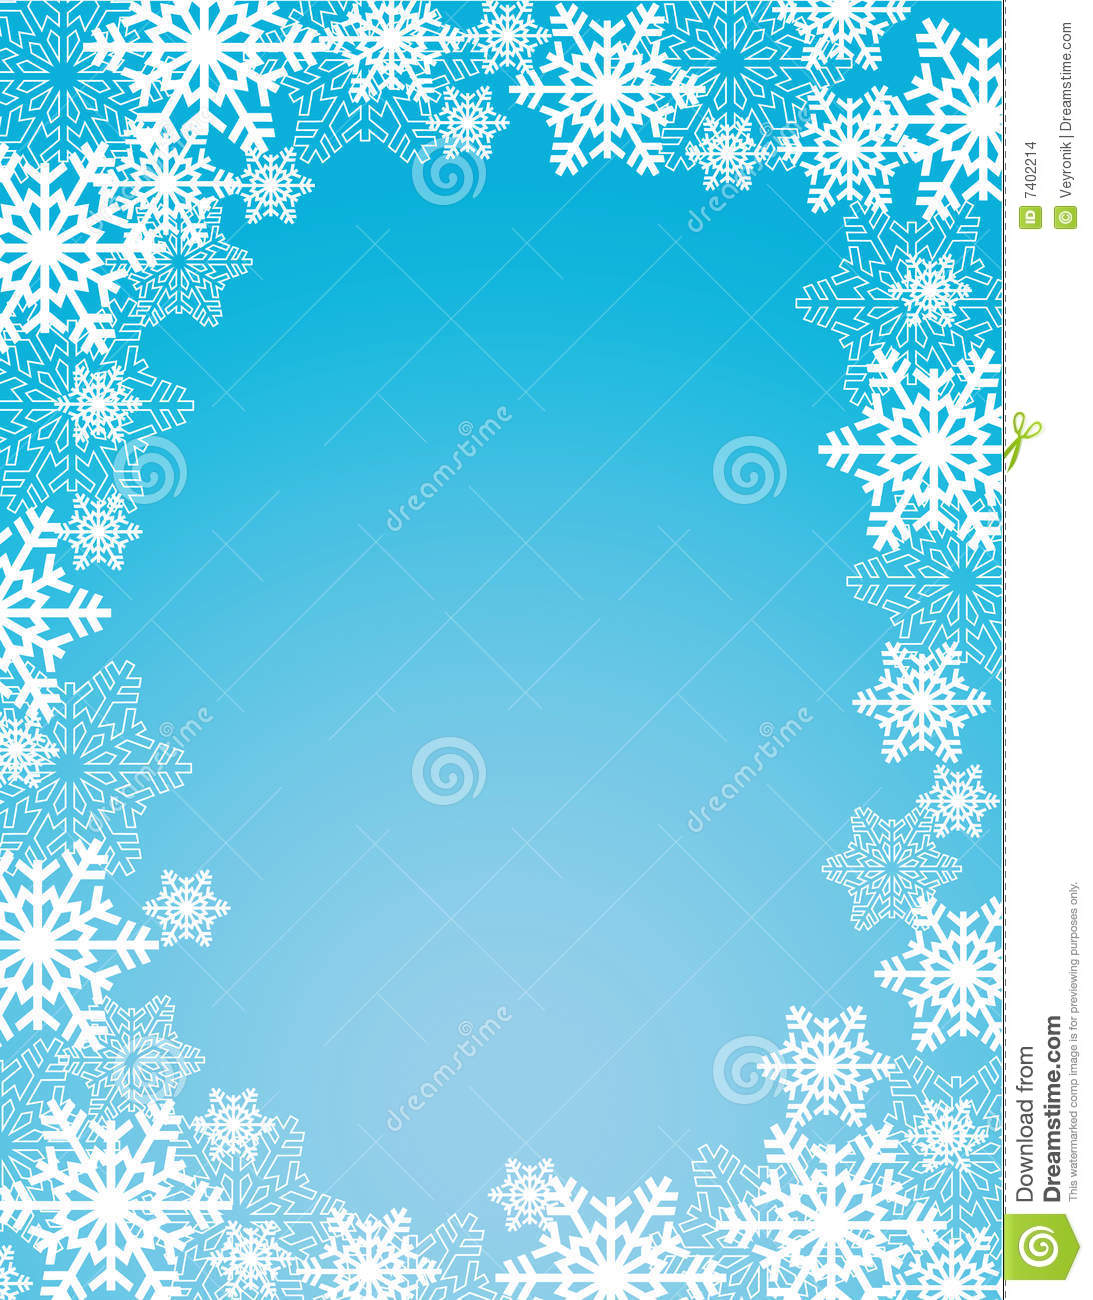 winter snowflakes frame stock vector  illustration of white